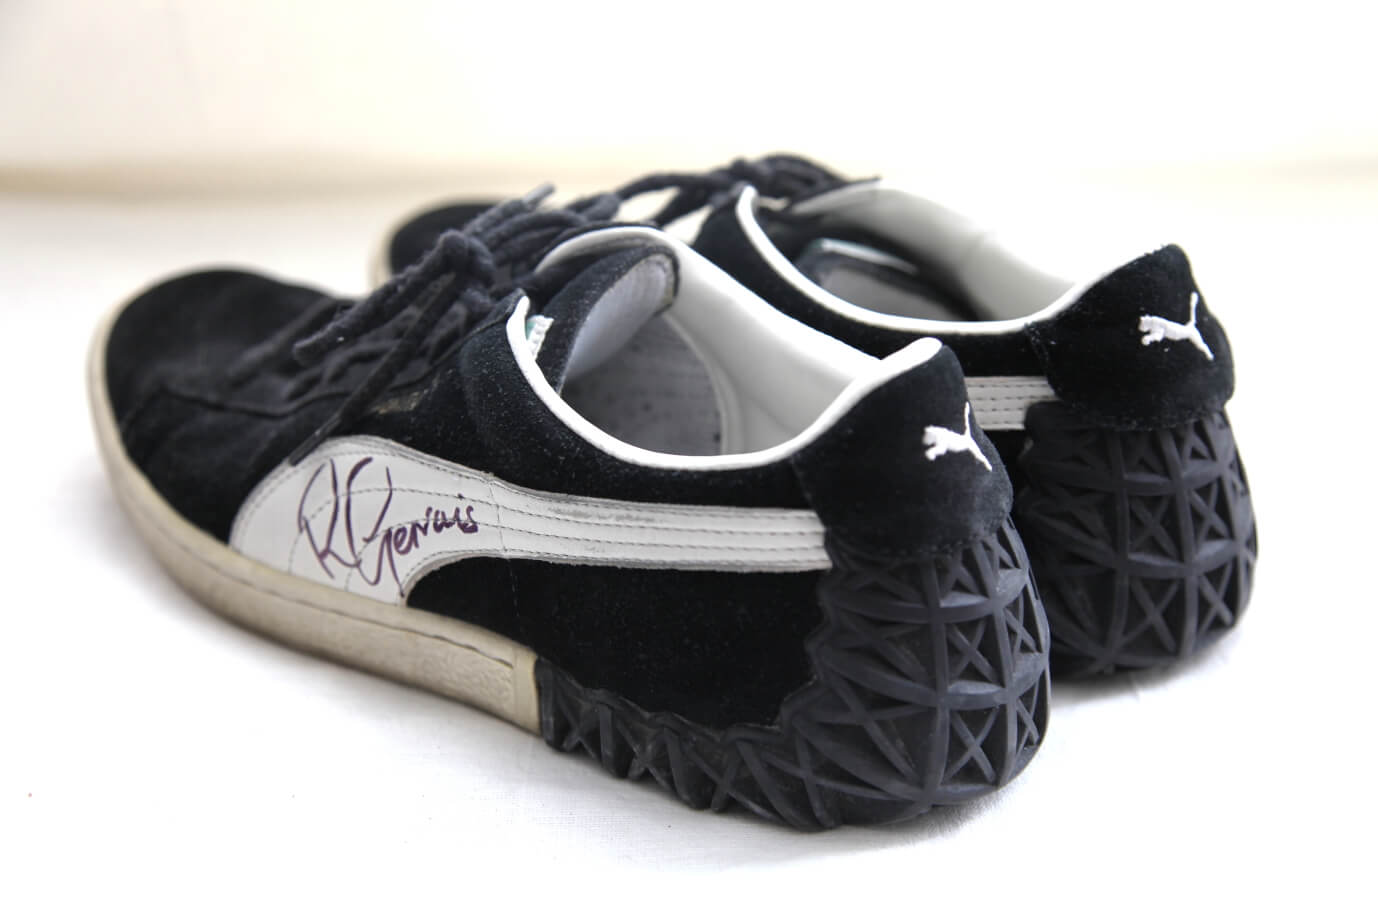 """2012:Ricky donated his Puma trainers in a size 8 andtold us, """"I wore these shoes when I guest starred in Curb Your Enthusiasm and on my HBO special Talking Funny. I hope they go to a good home and raise loads of cash for this wonderful cause"""""""